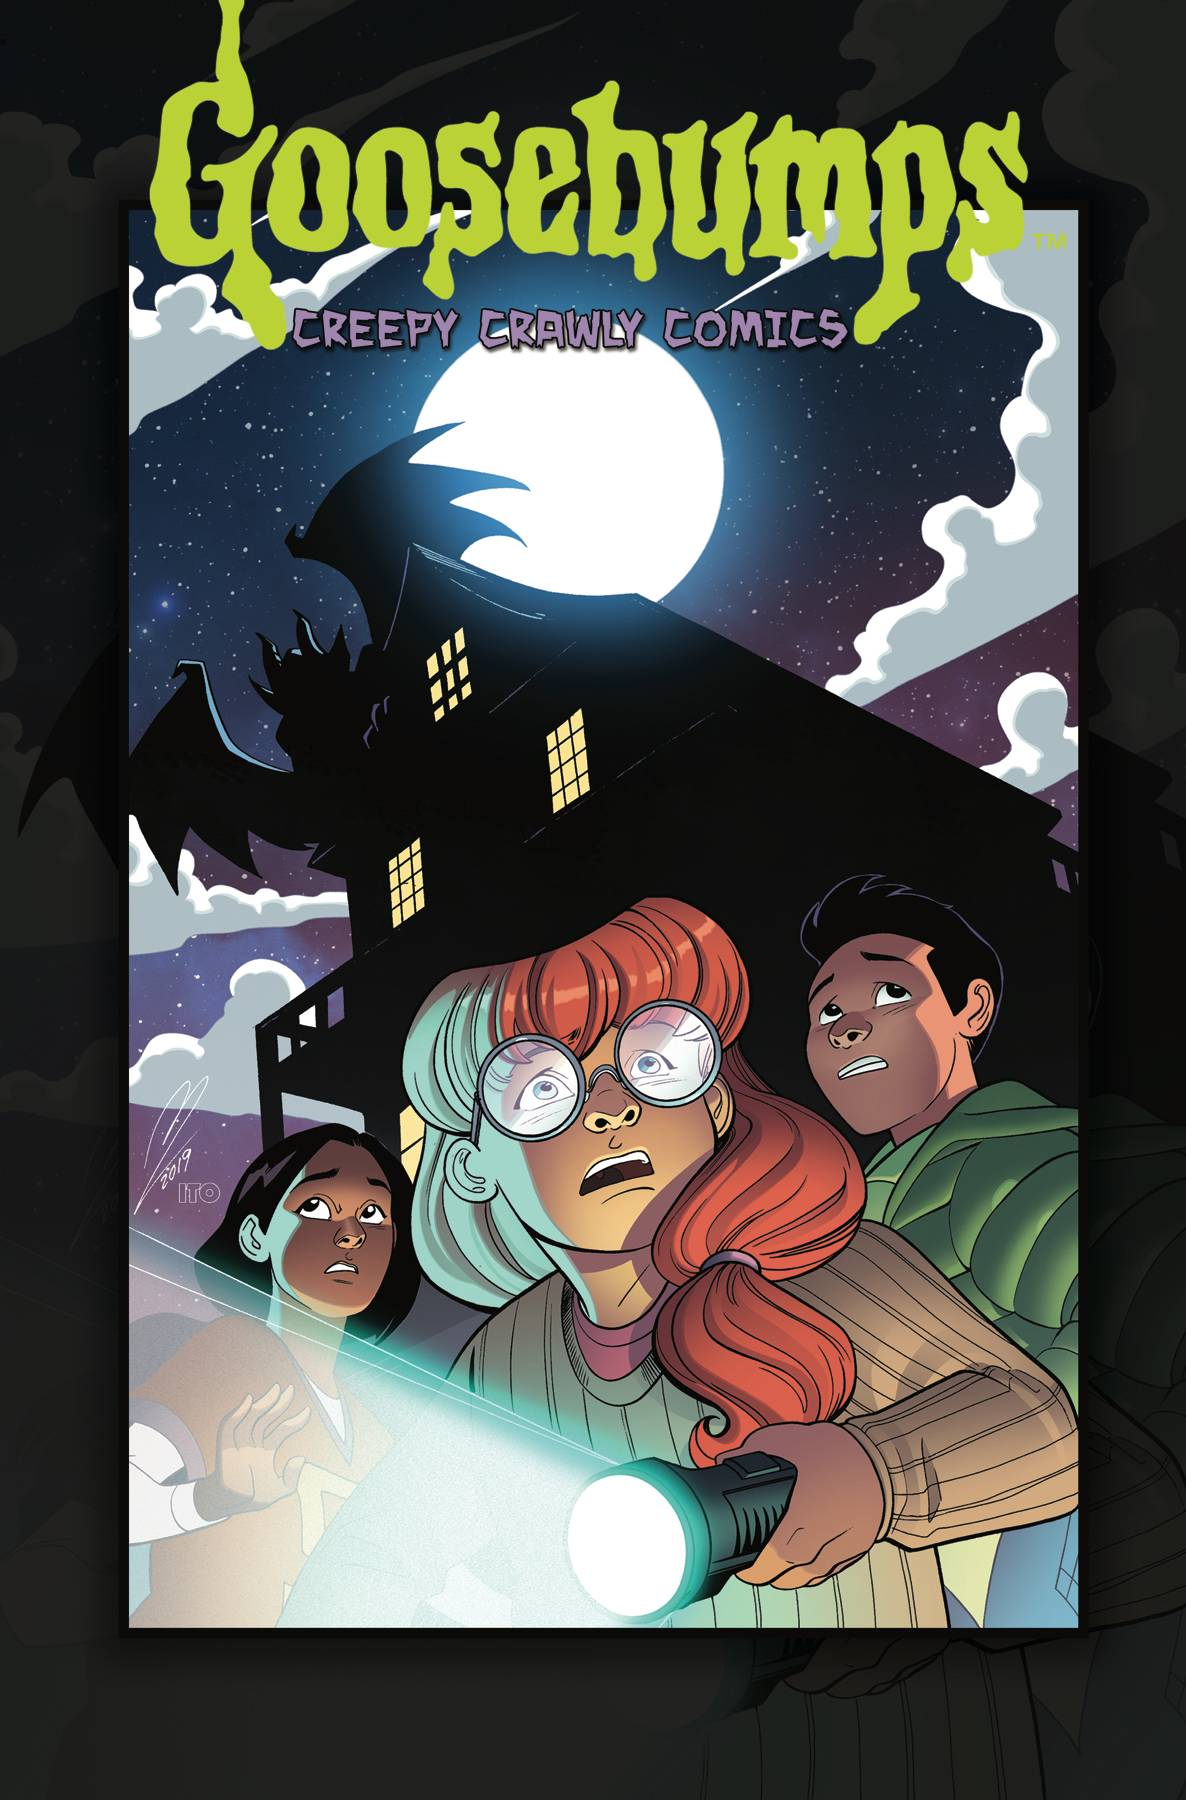 GOOSEBUMPS CREEP CRAWLY COMICS TP